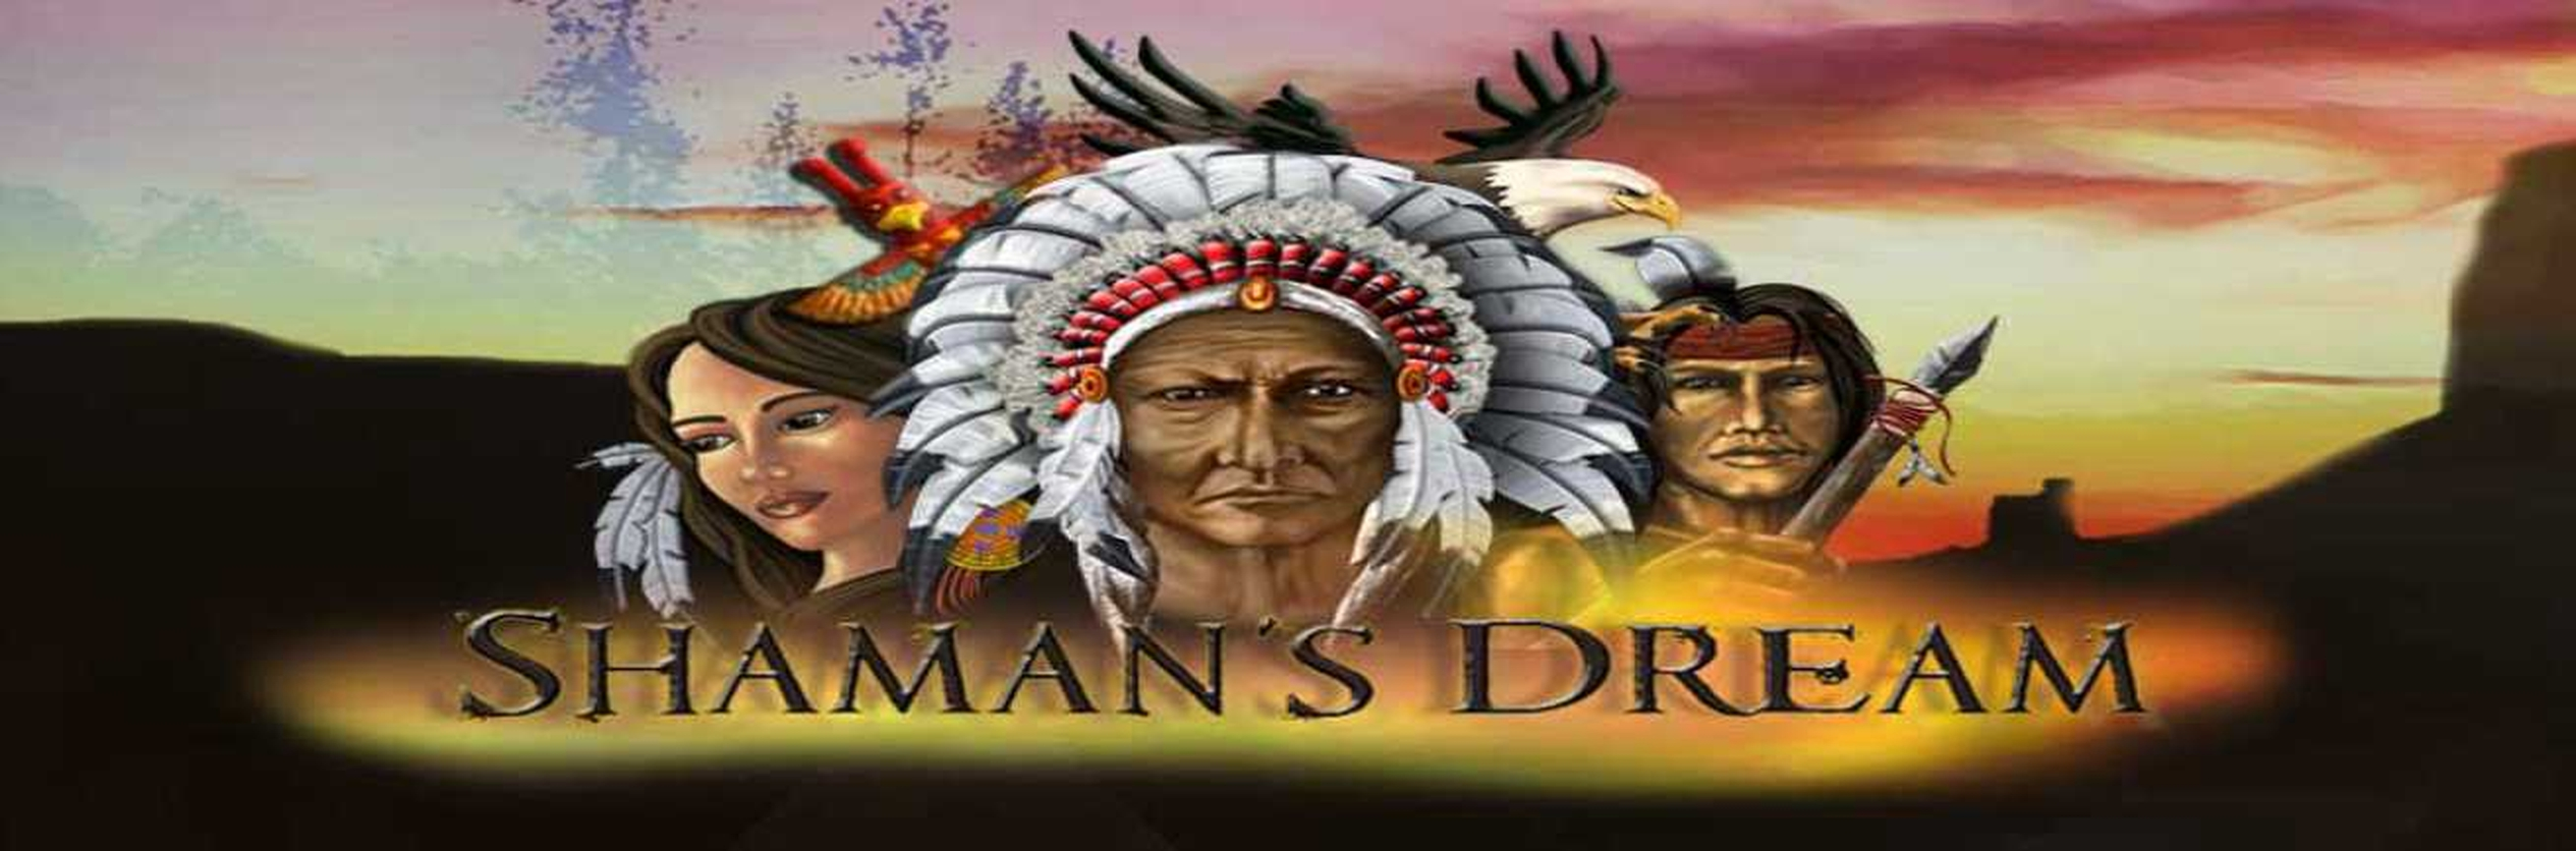 The Shamans Dream Jackpot Online Slot Demo Game by EYECON